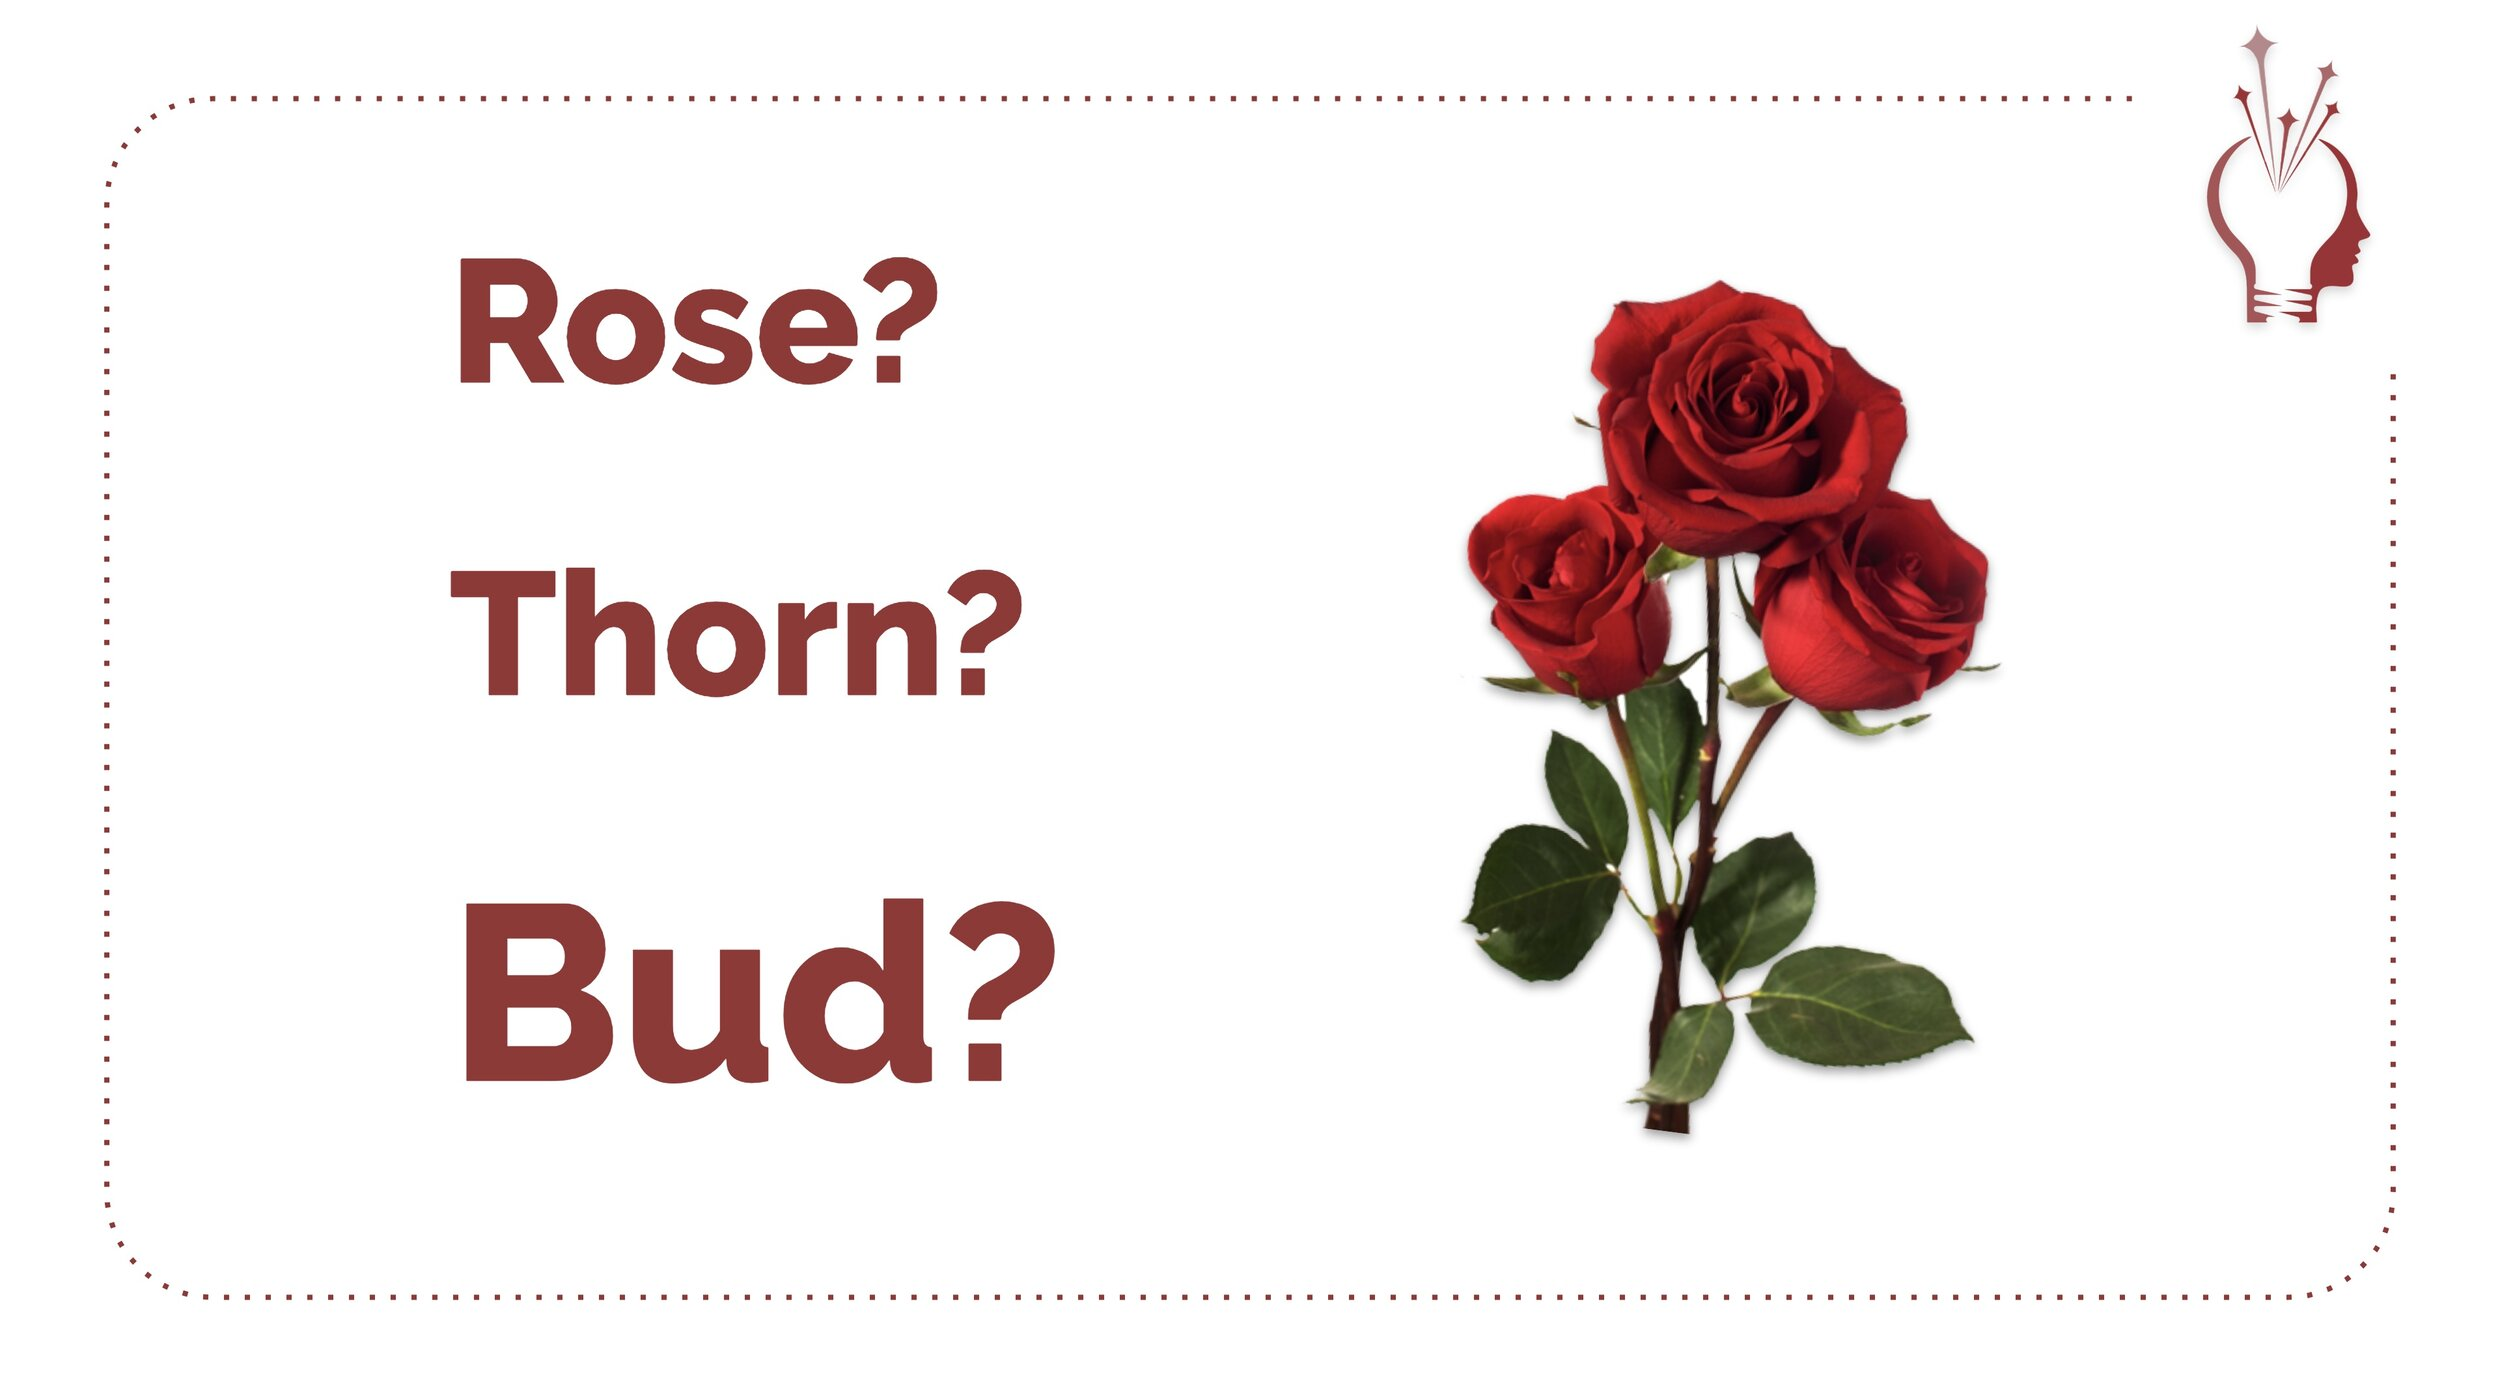 What's your rose, thorn, and bud this year? – Retrieval Practice